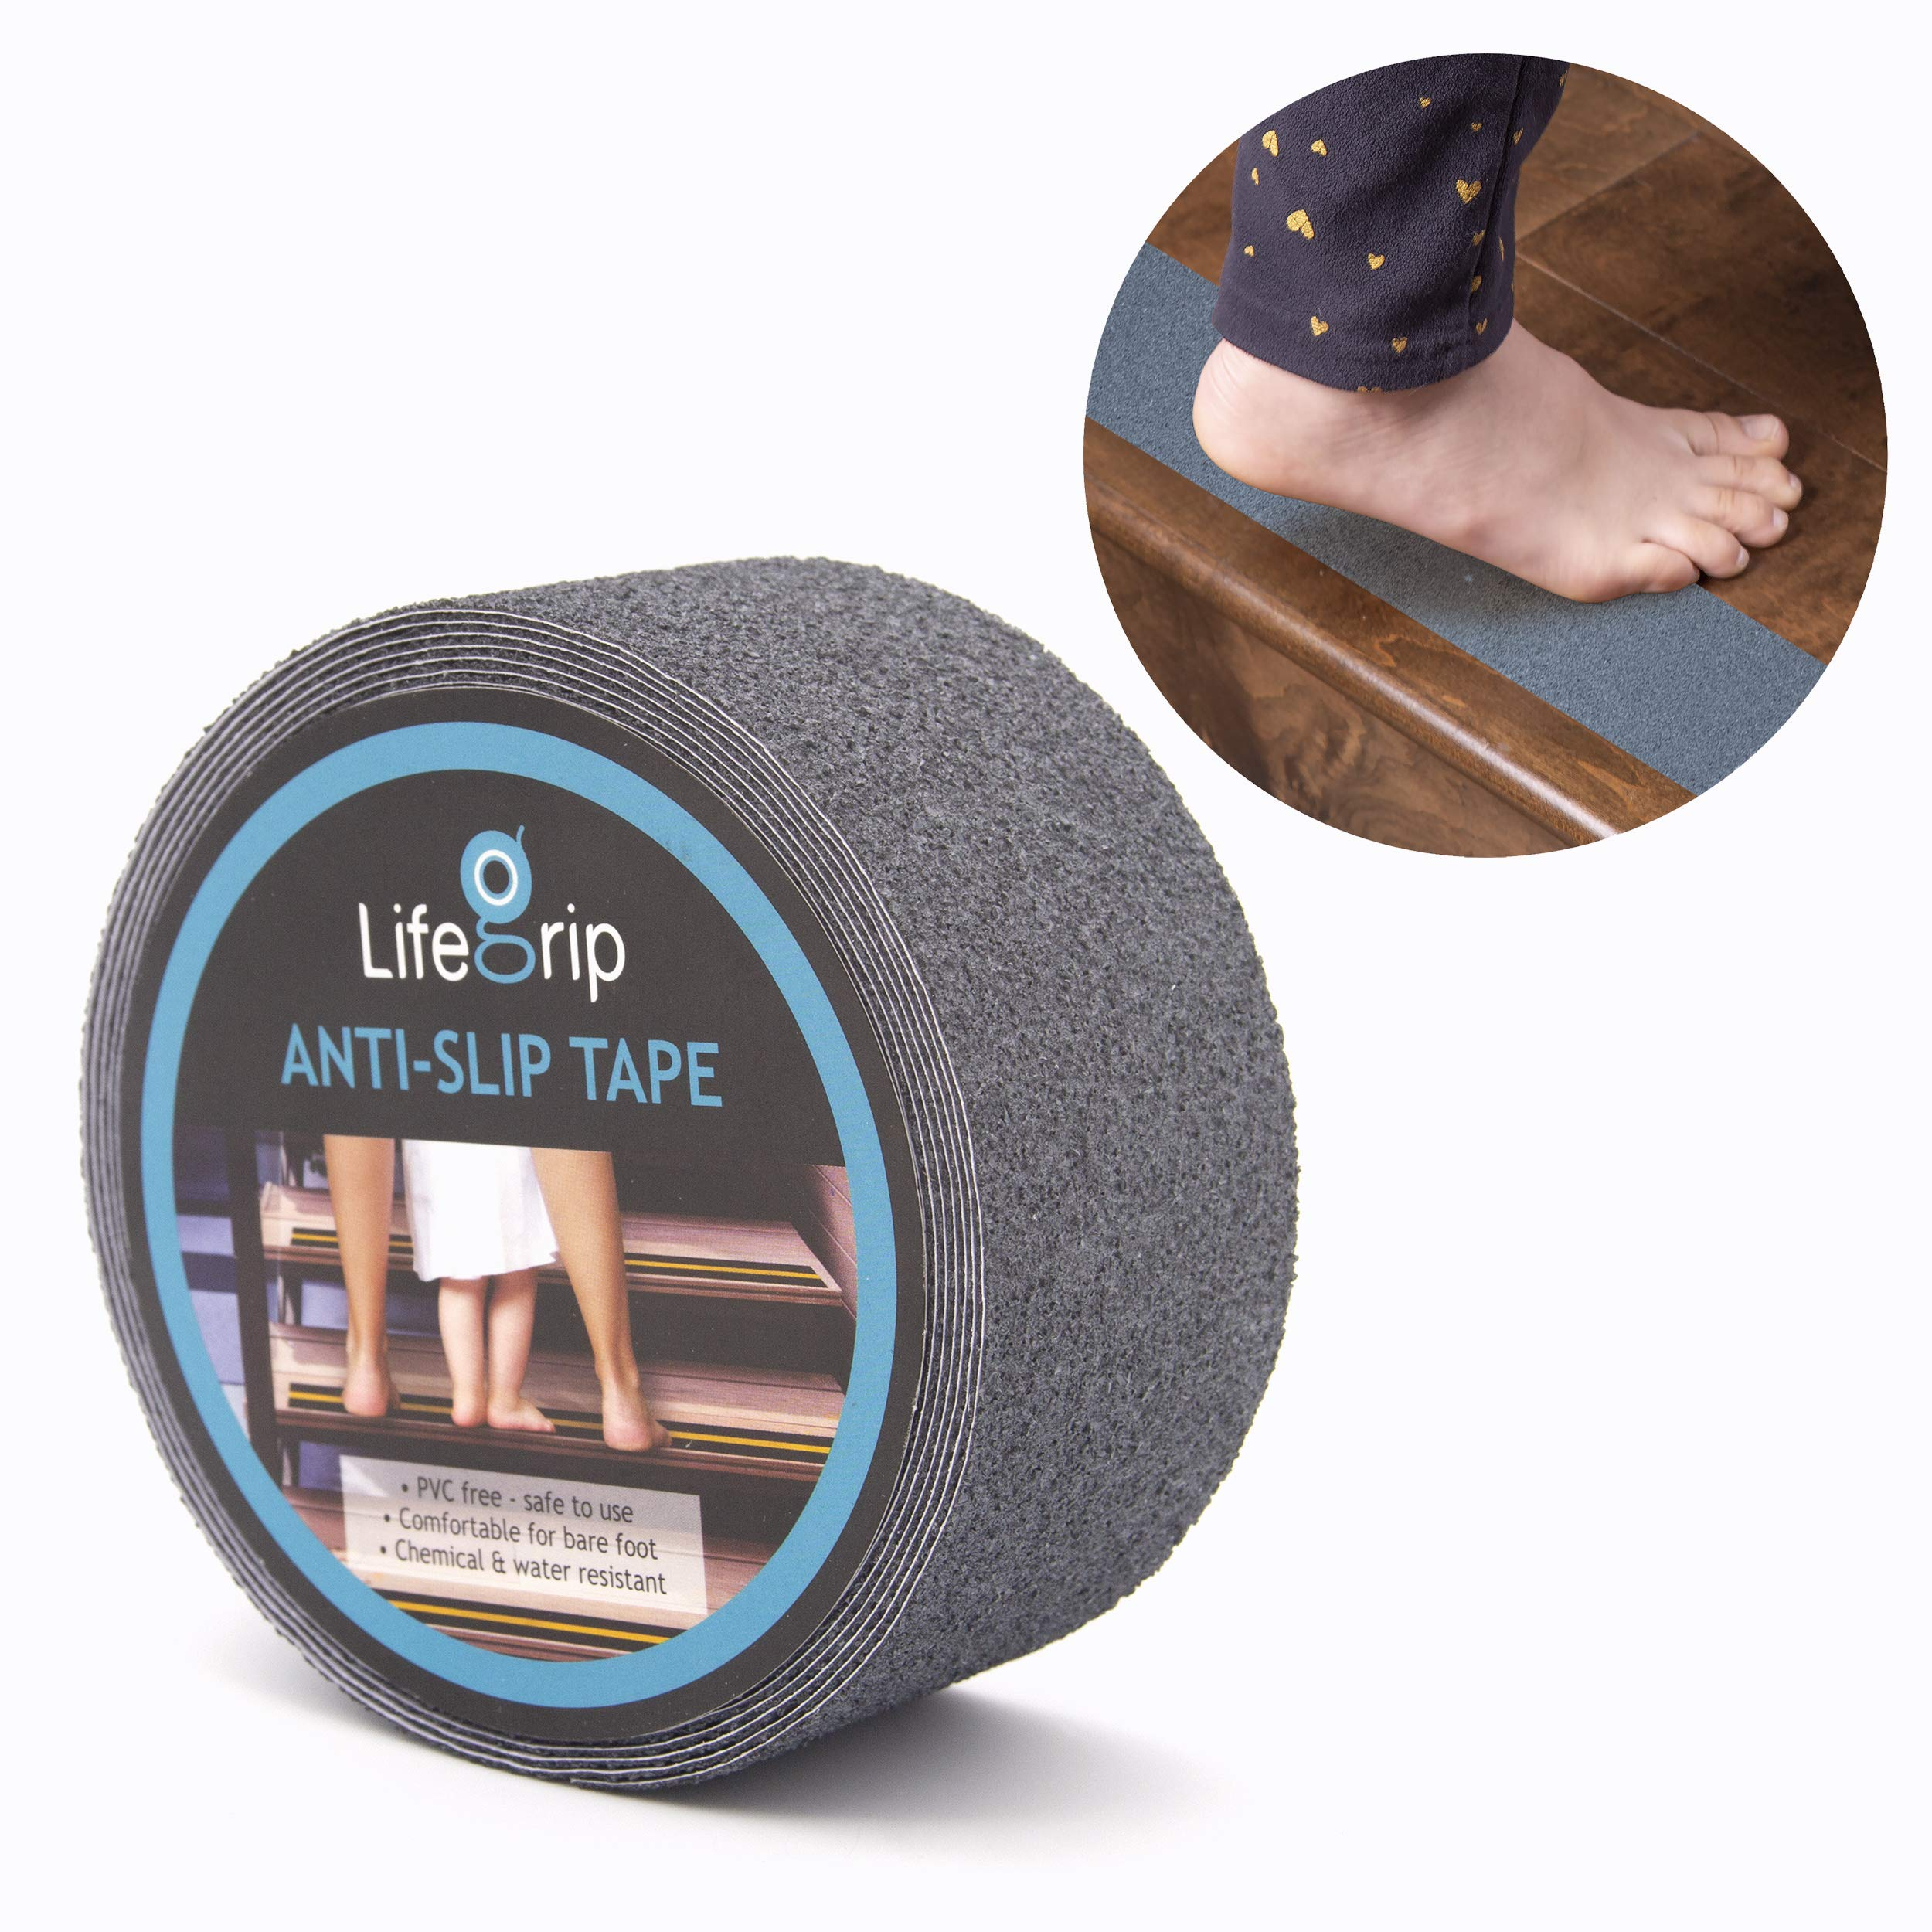 LifeGrip Anti Slip Safety Tape, Non Slip Stair Tread, Textured Rubber Surface, Comfortable for Bare Foot, 2 inch X 15 foot, Grey by LifeGrip Stay on Track